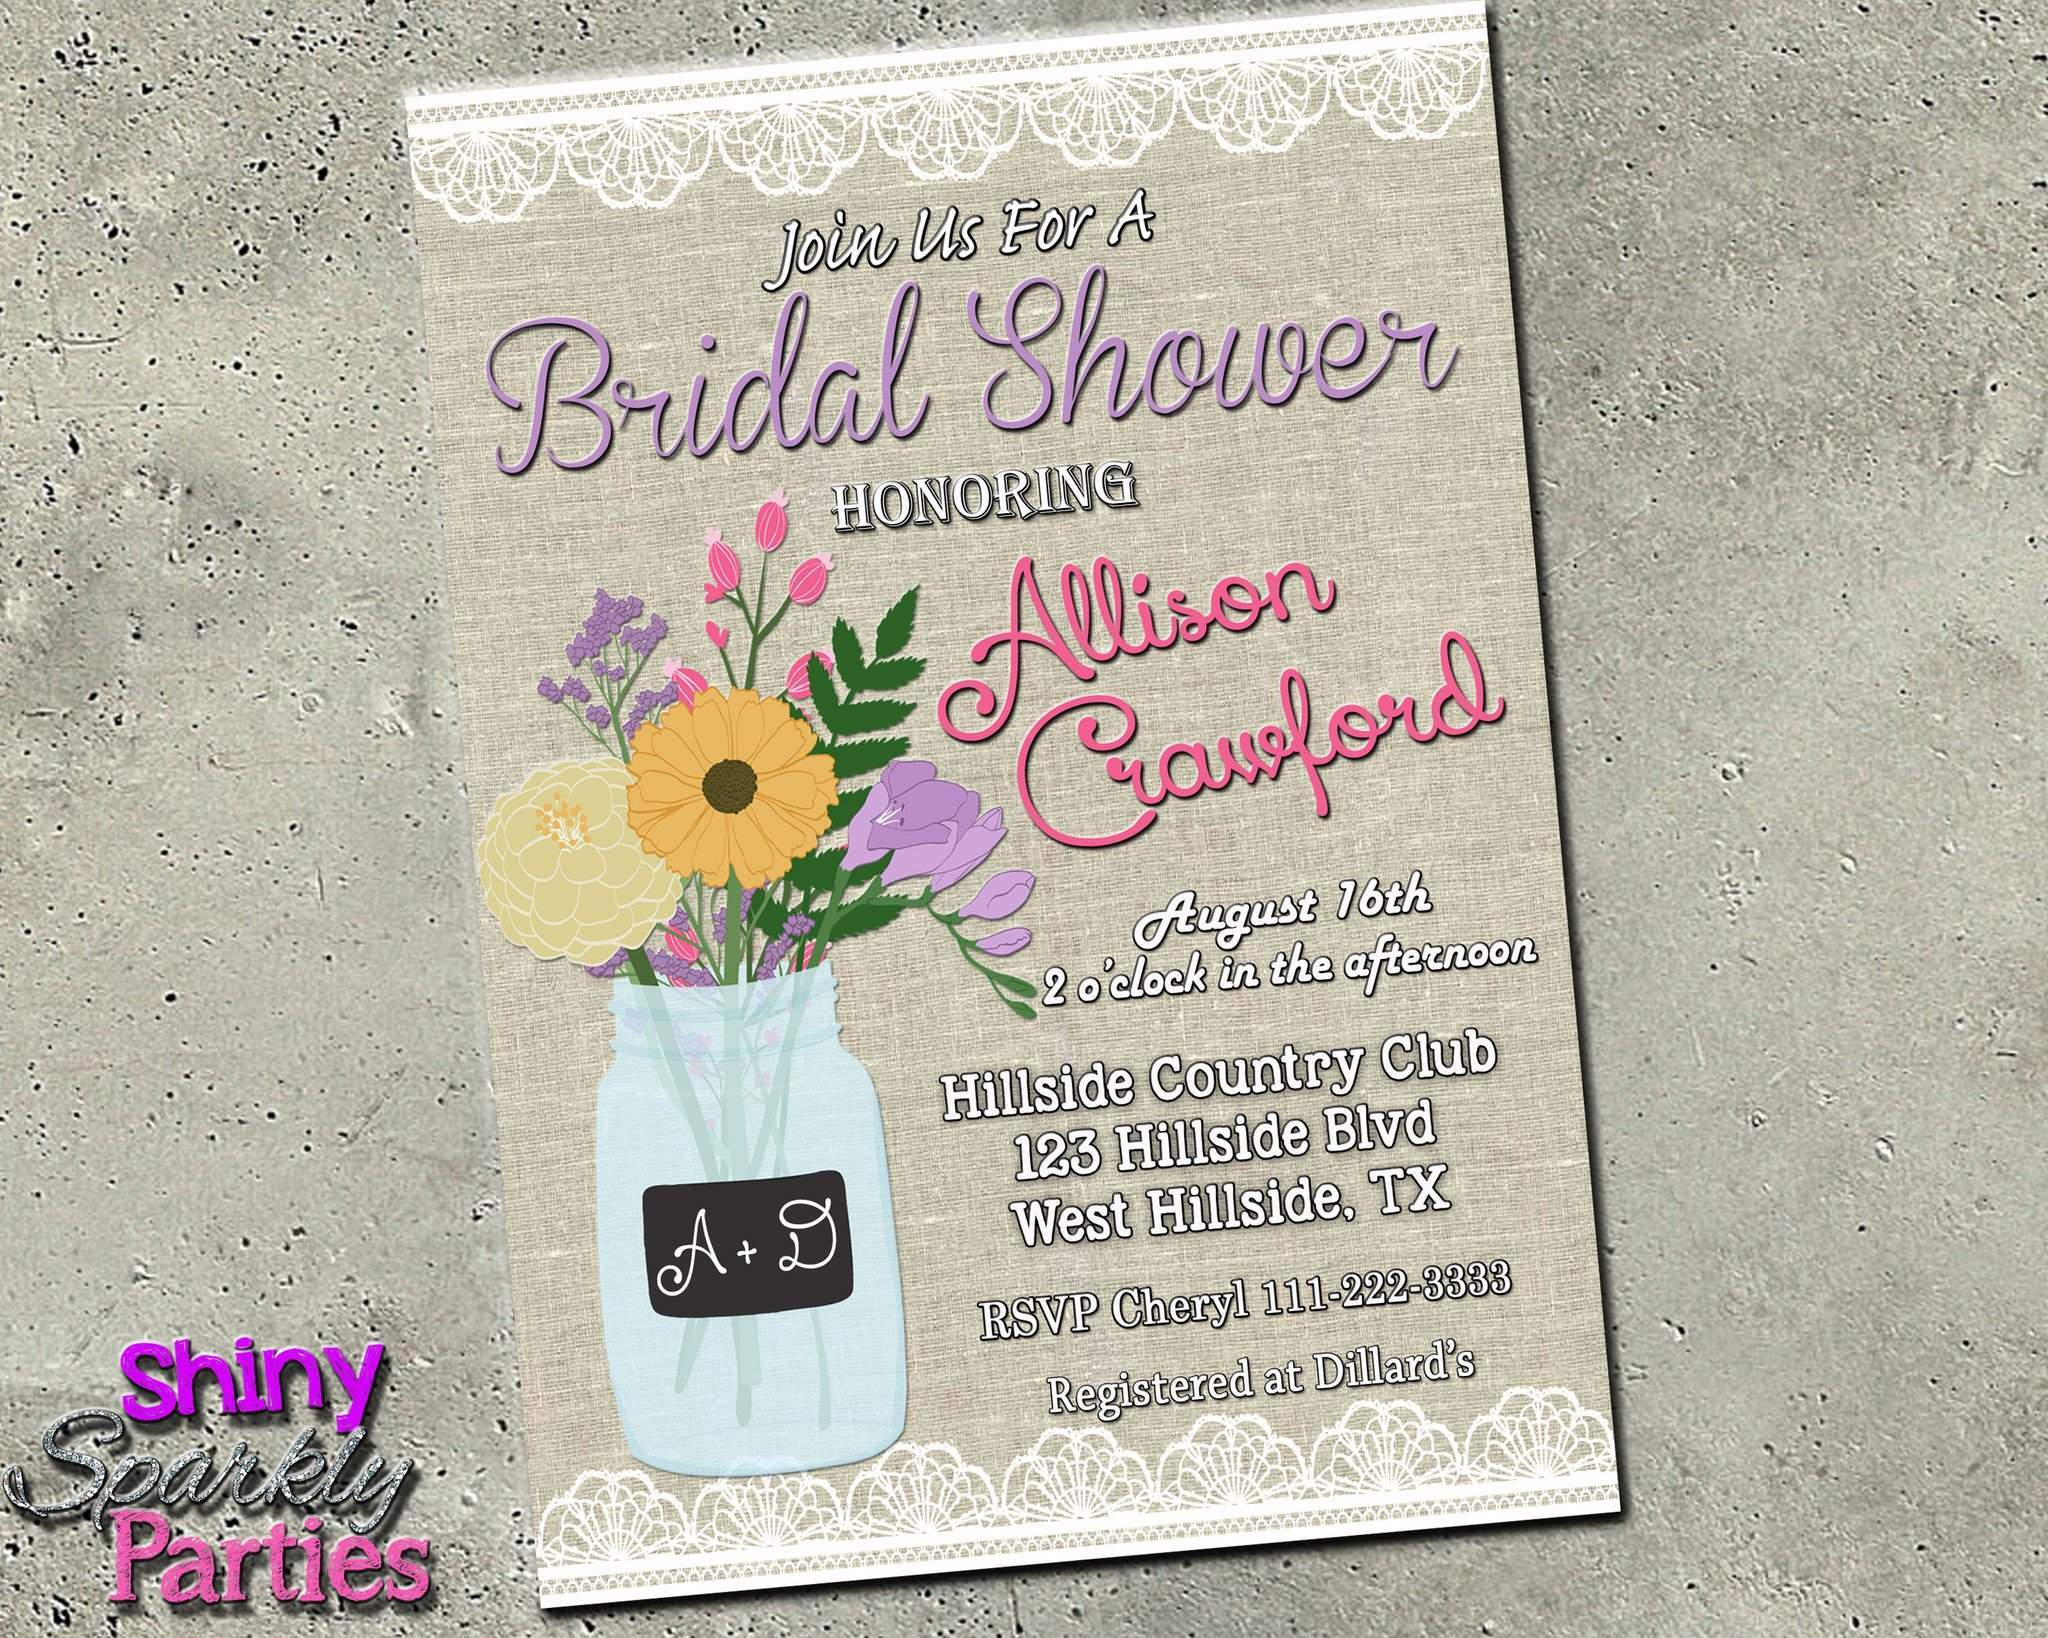 photo relating to Bridal Shower Invitations Printable identified as Mason Jar Bridal Shower Invitation